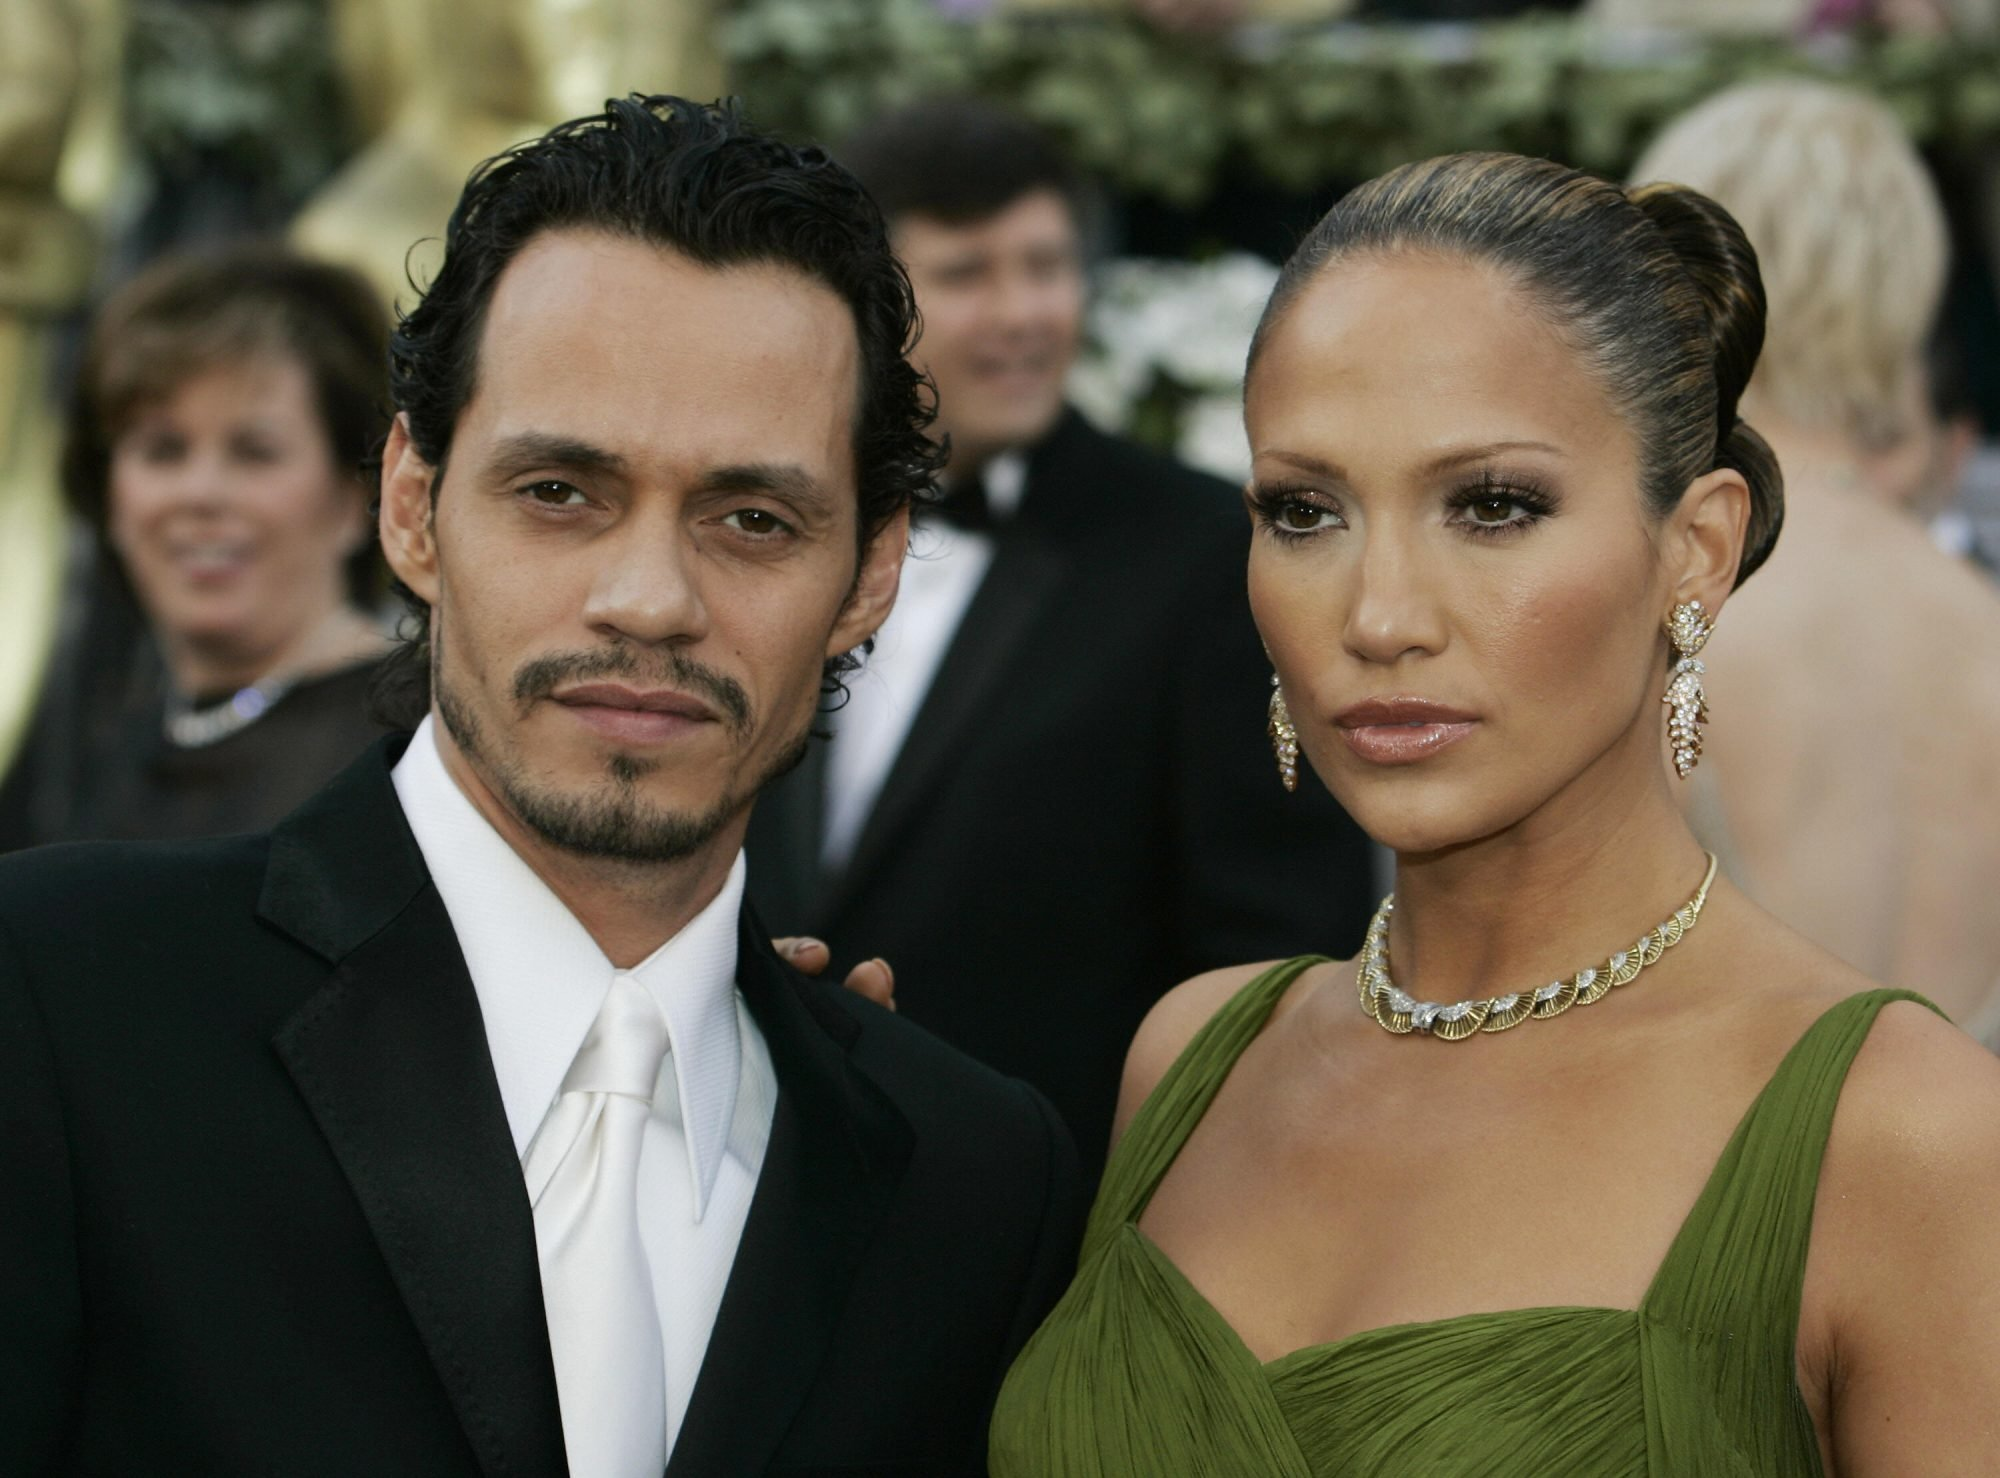 marc-anthony-heres-how-jennifer-lopezs-ex-husband-feels-about-her-reuniting-with-ben-affleck